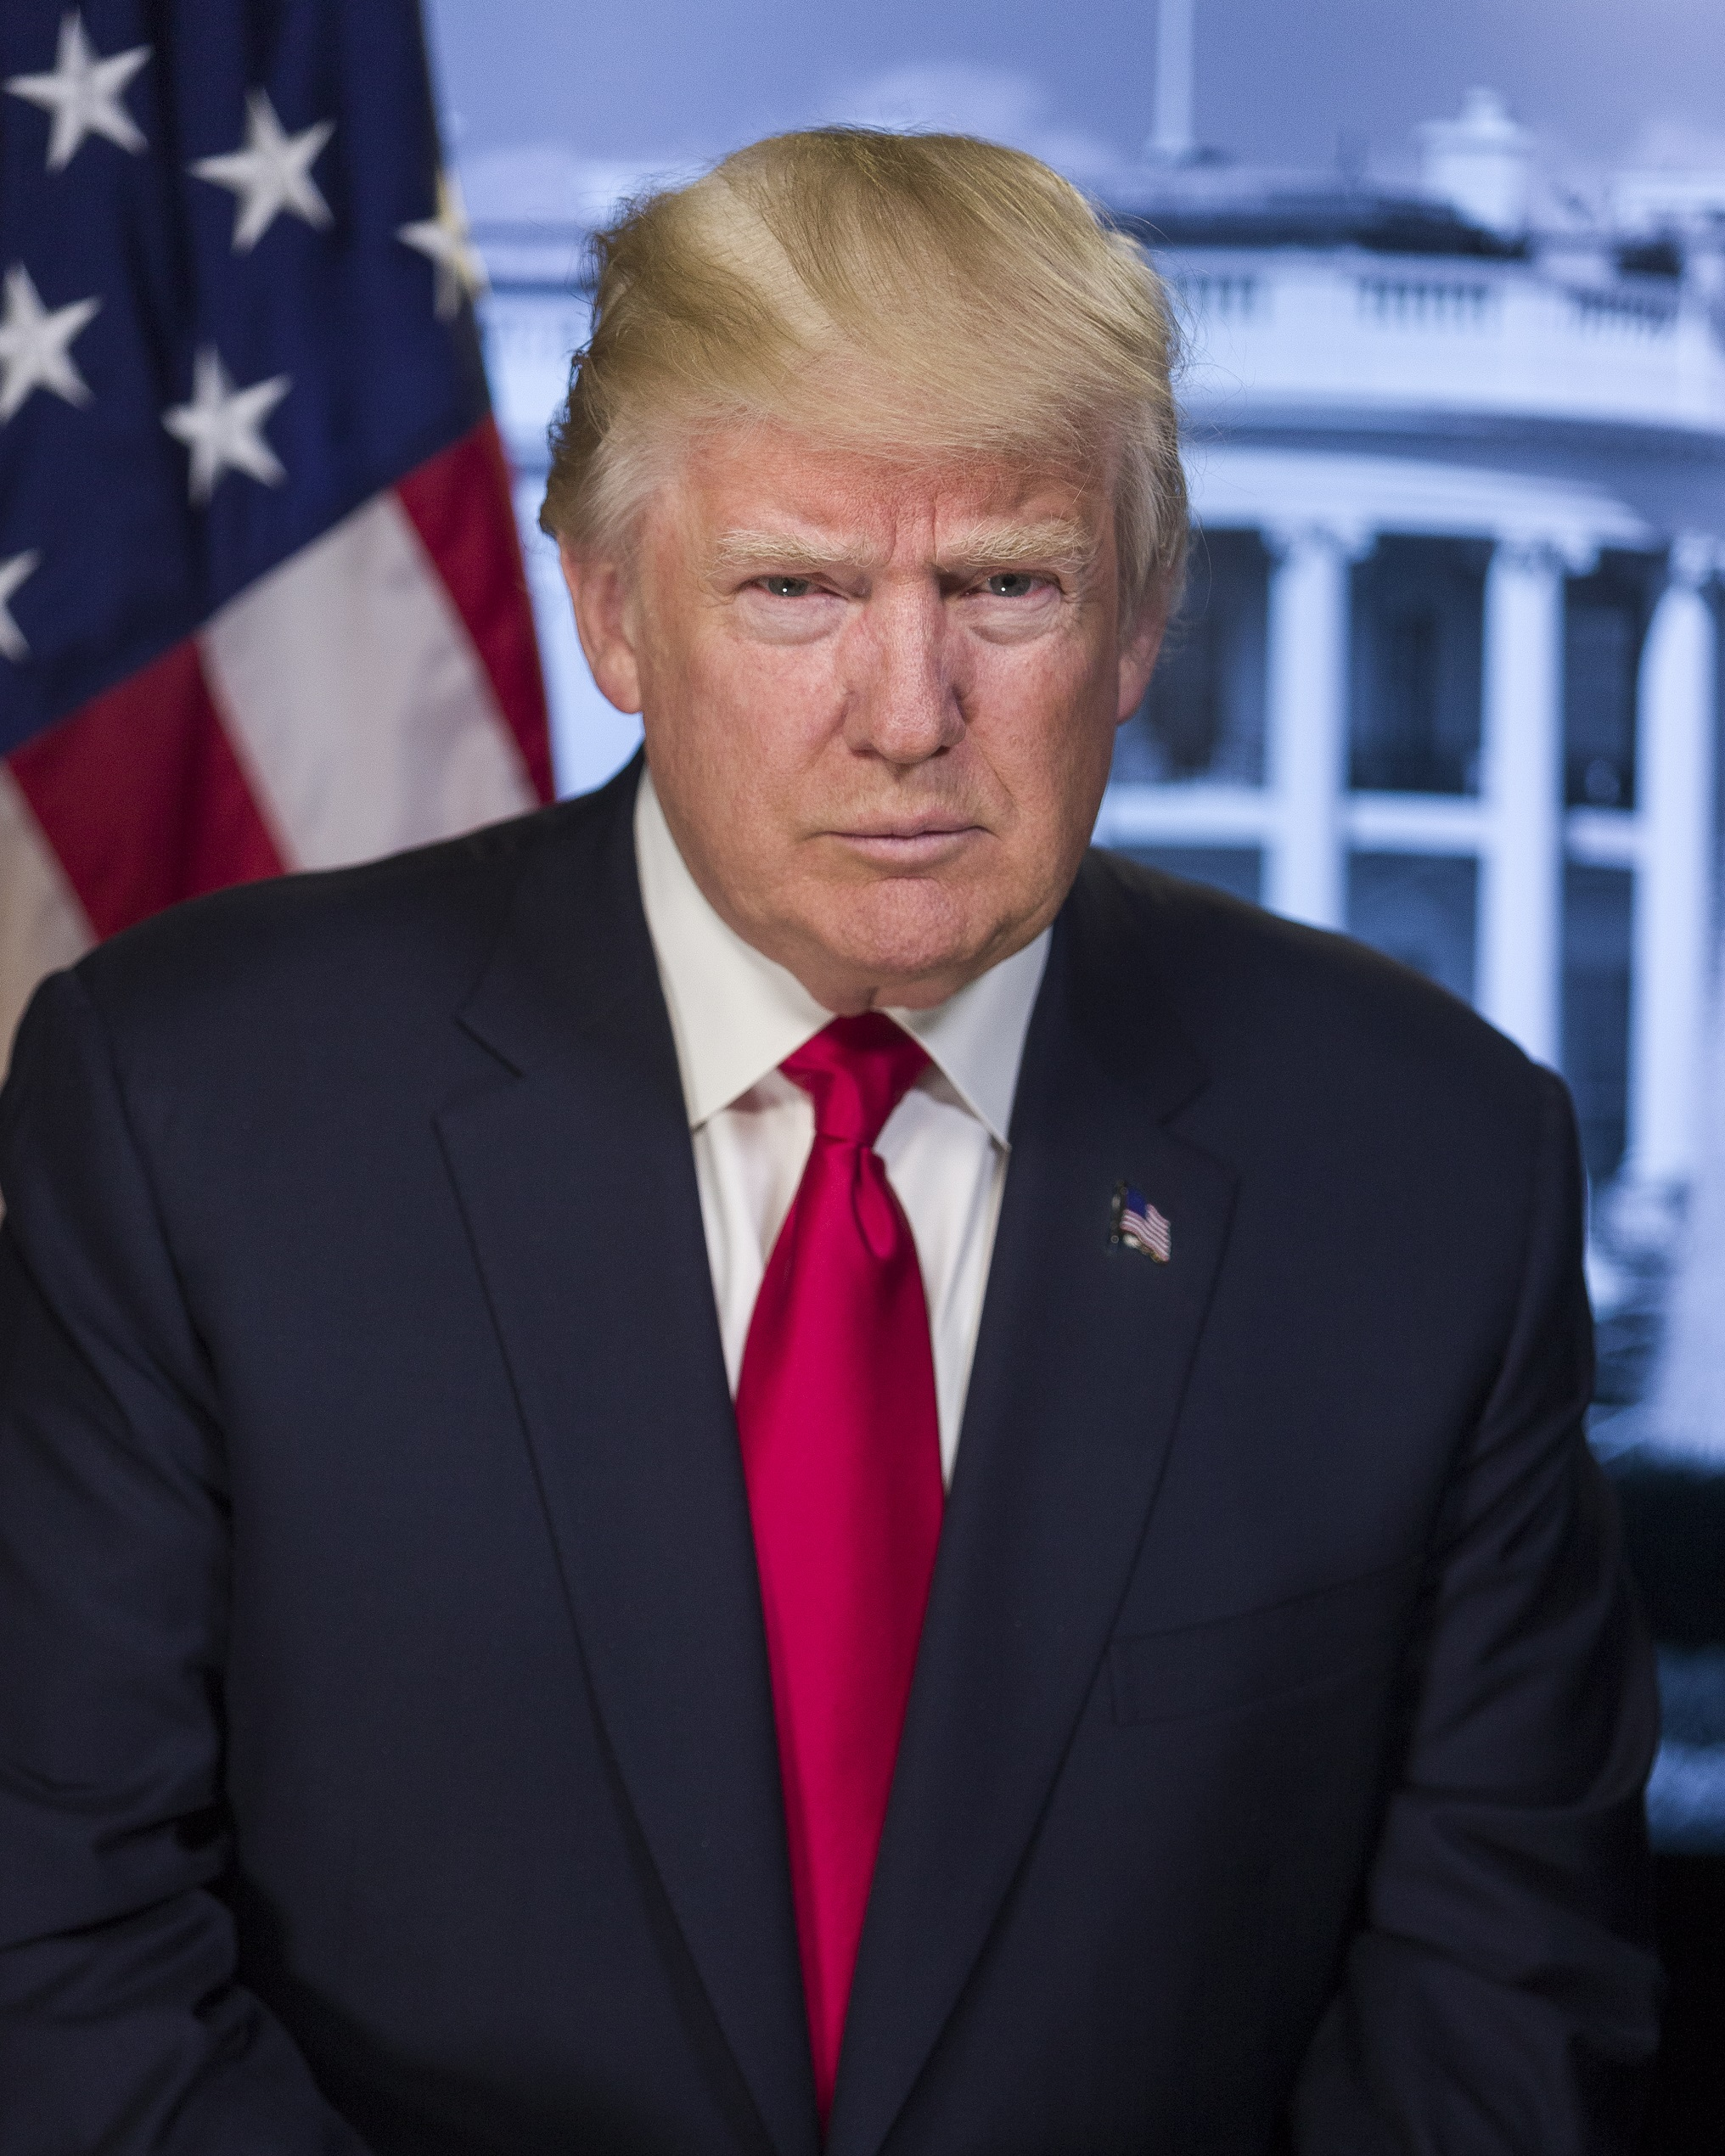 donaldtrump-officialpresidentialphoto-smaller